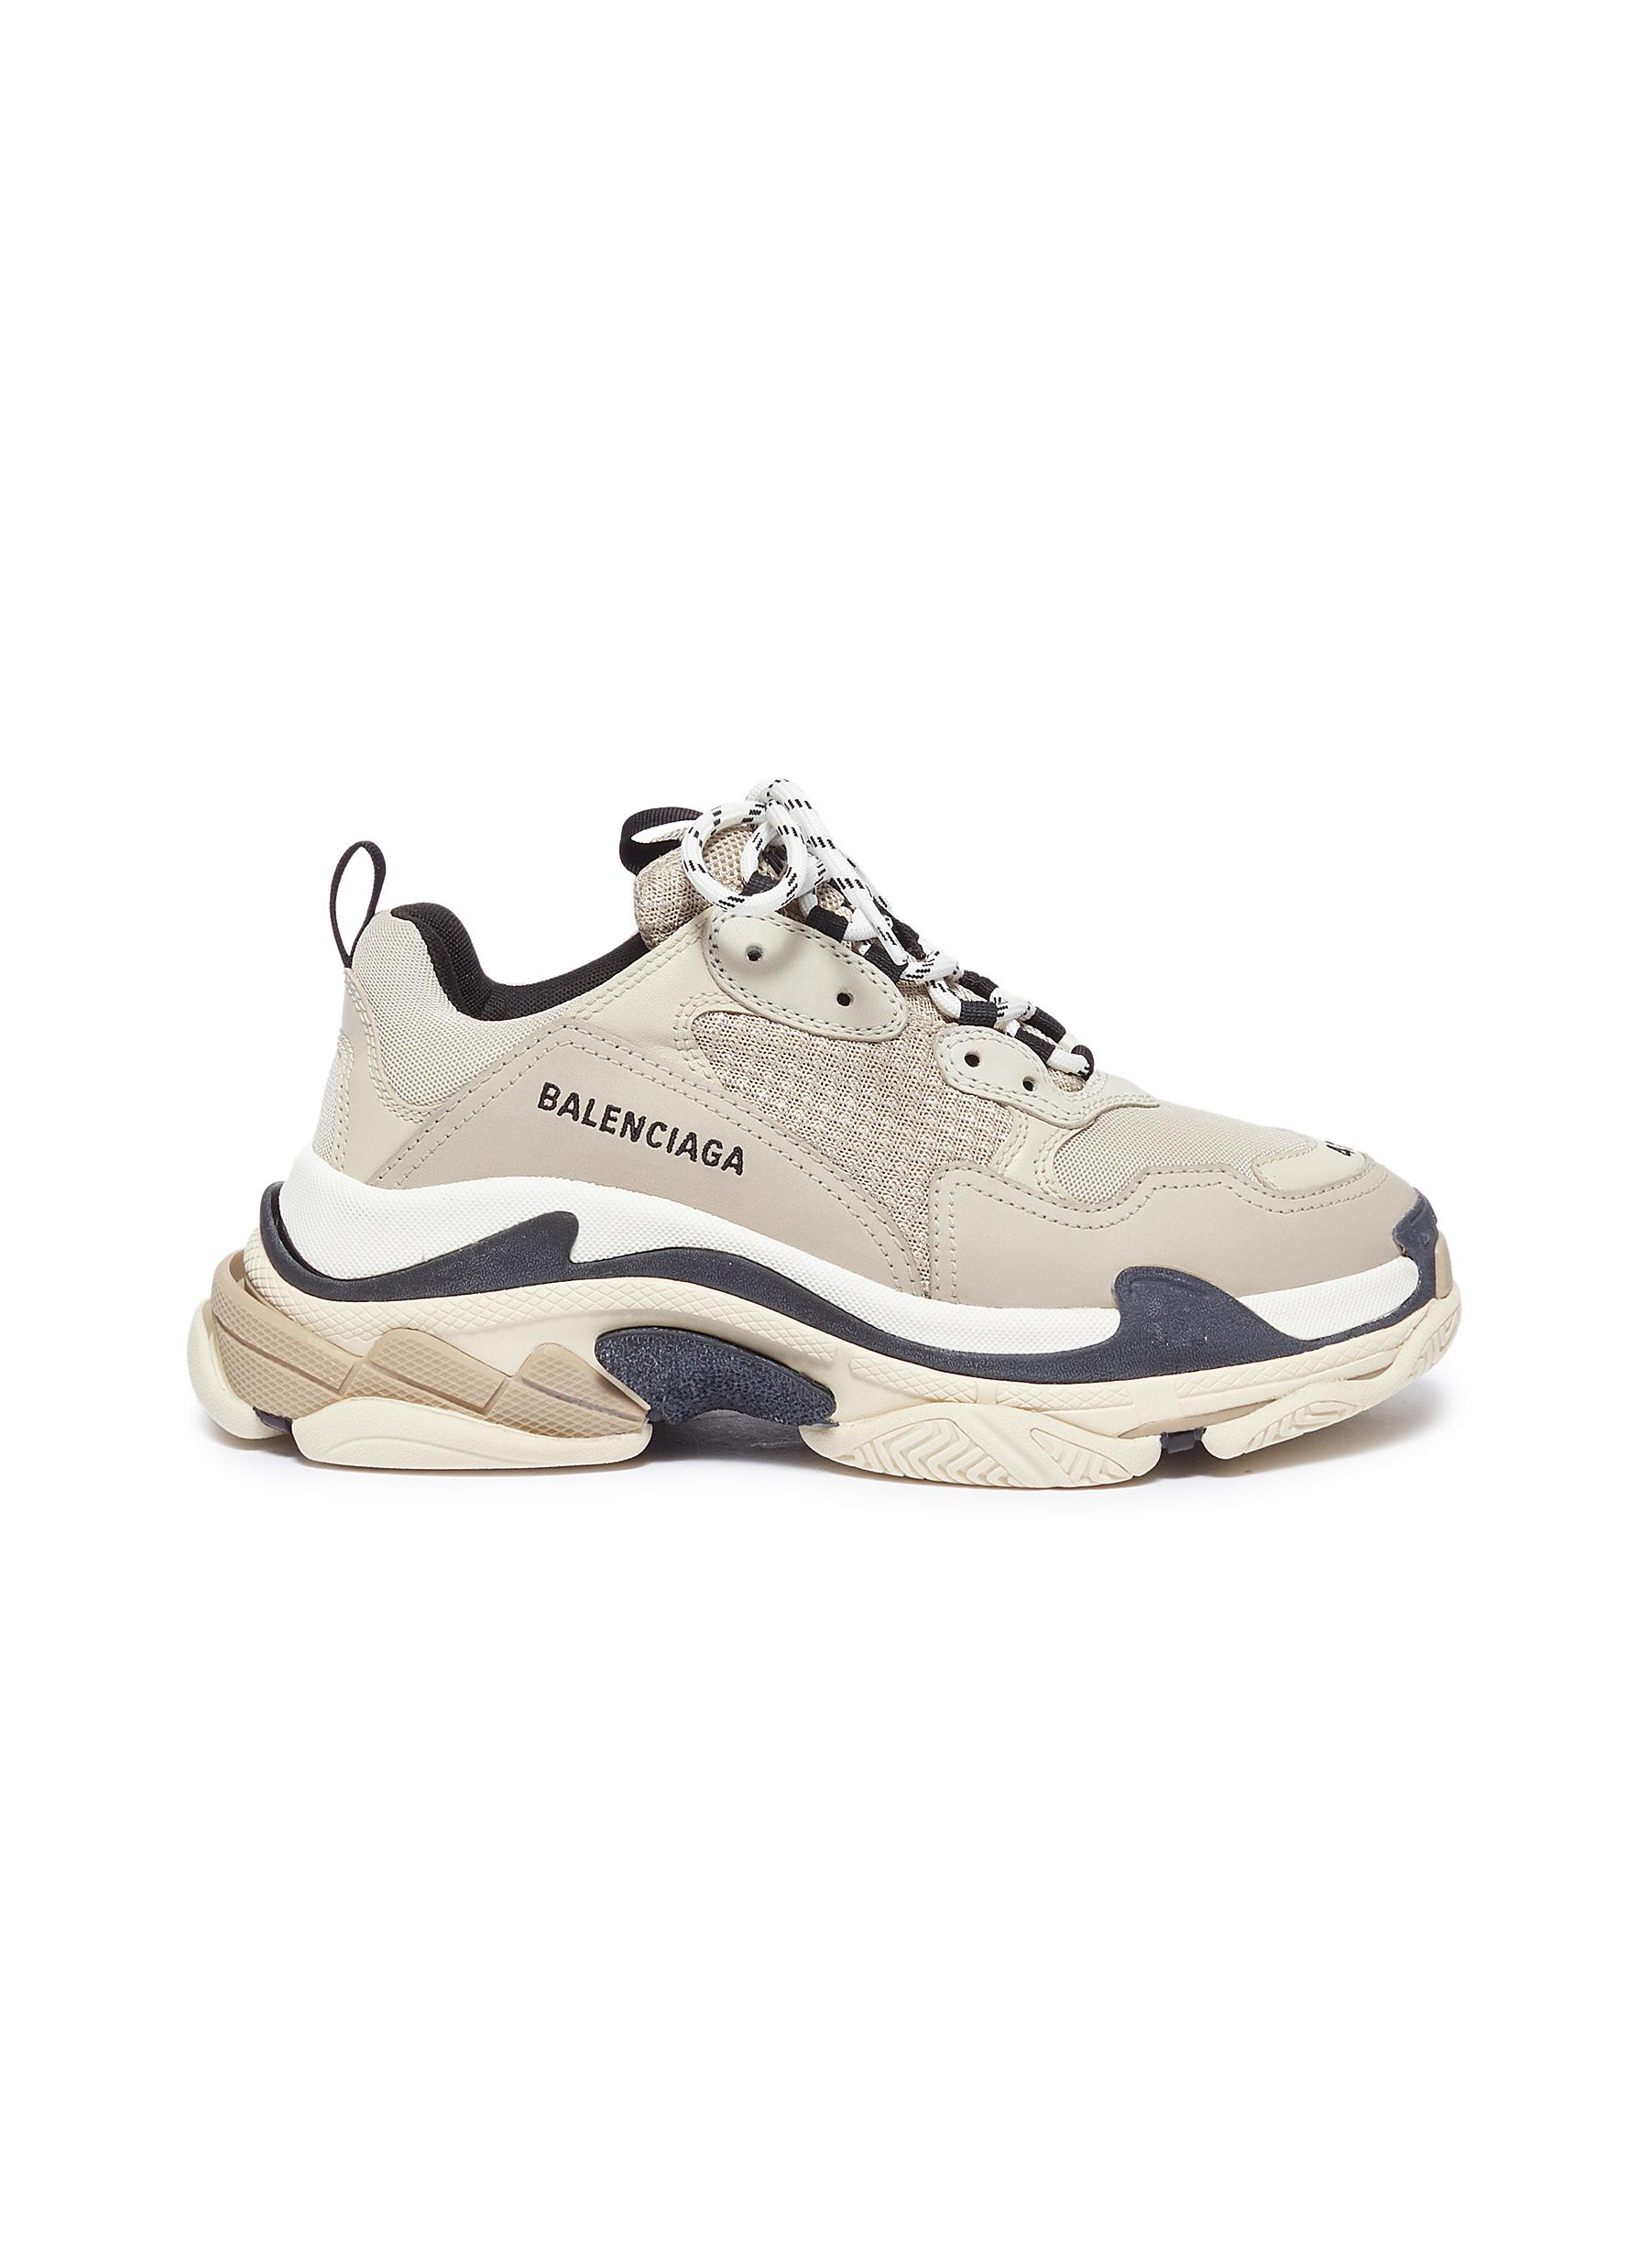 Triple S stack midsole patchwork sneakers by Balenciaga